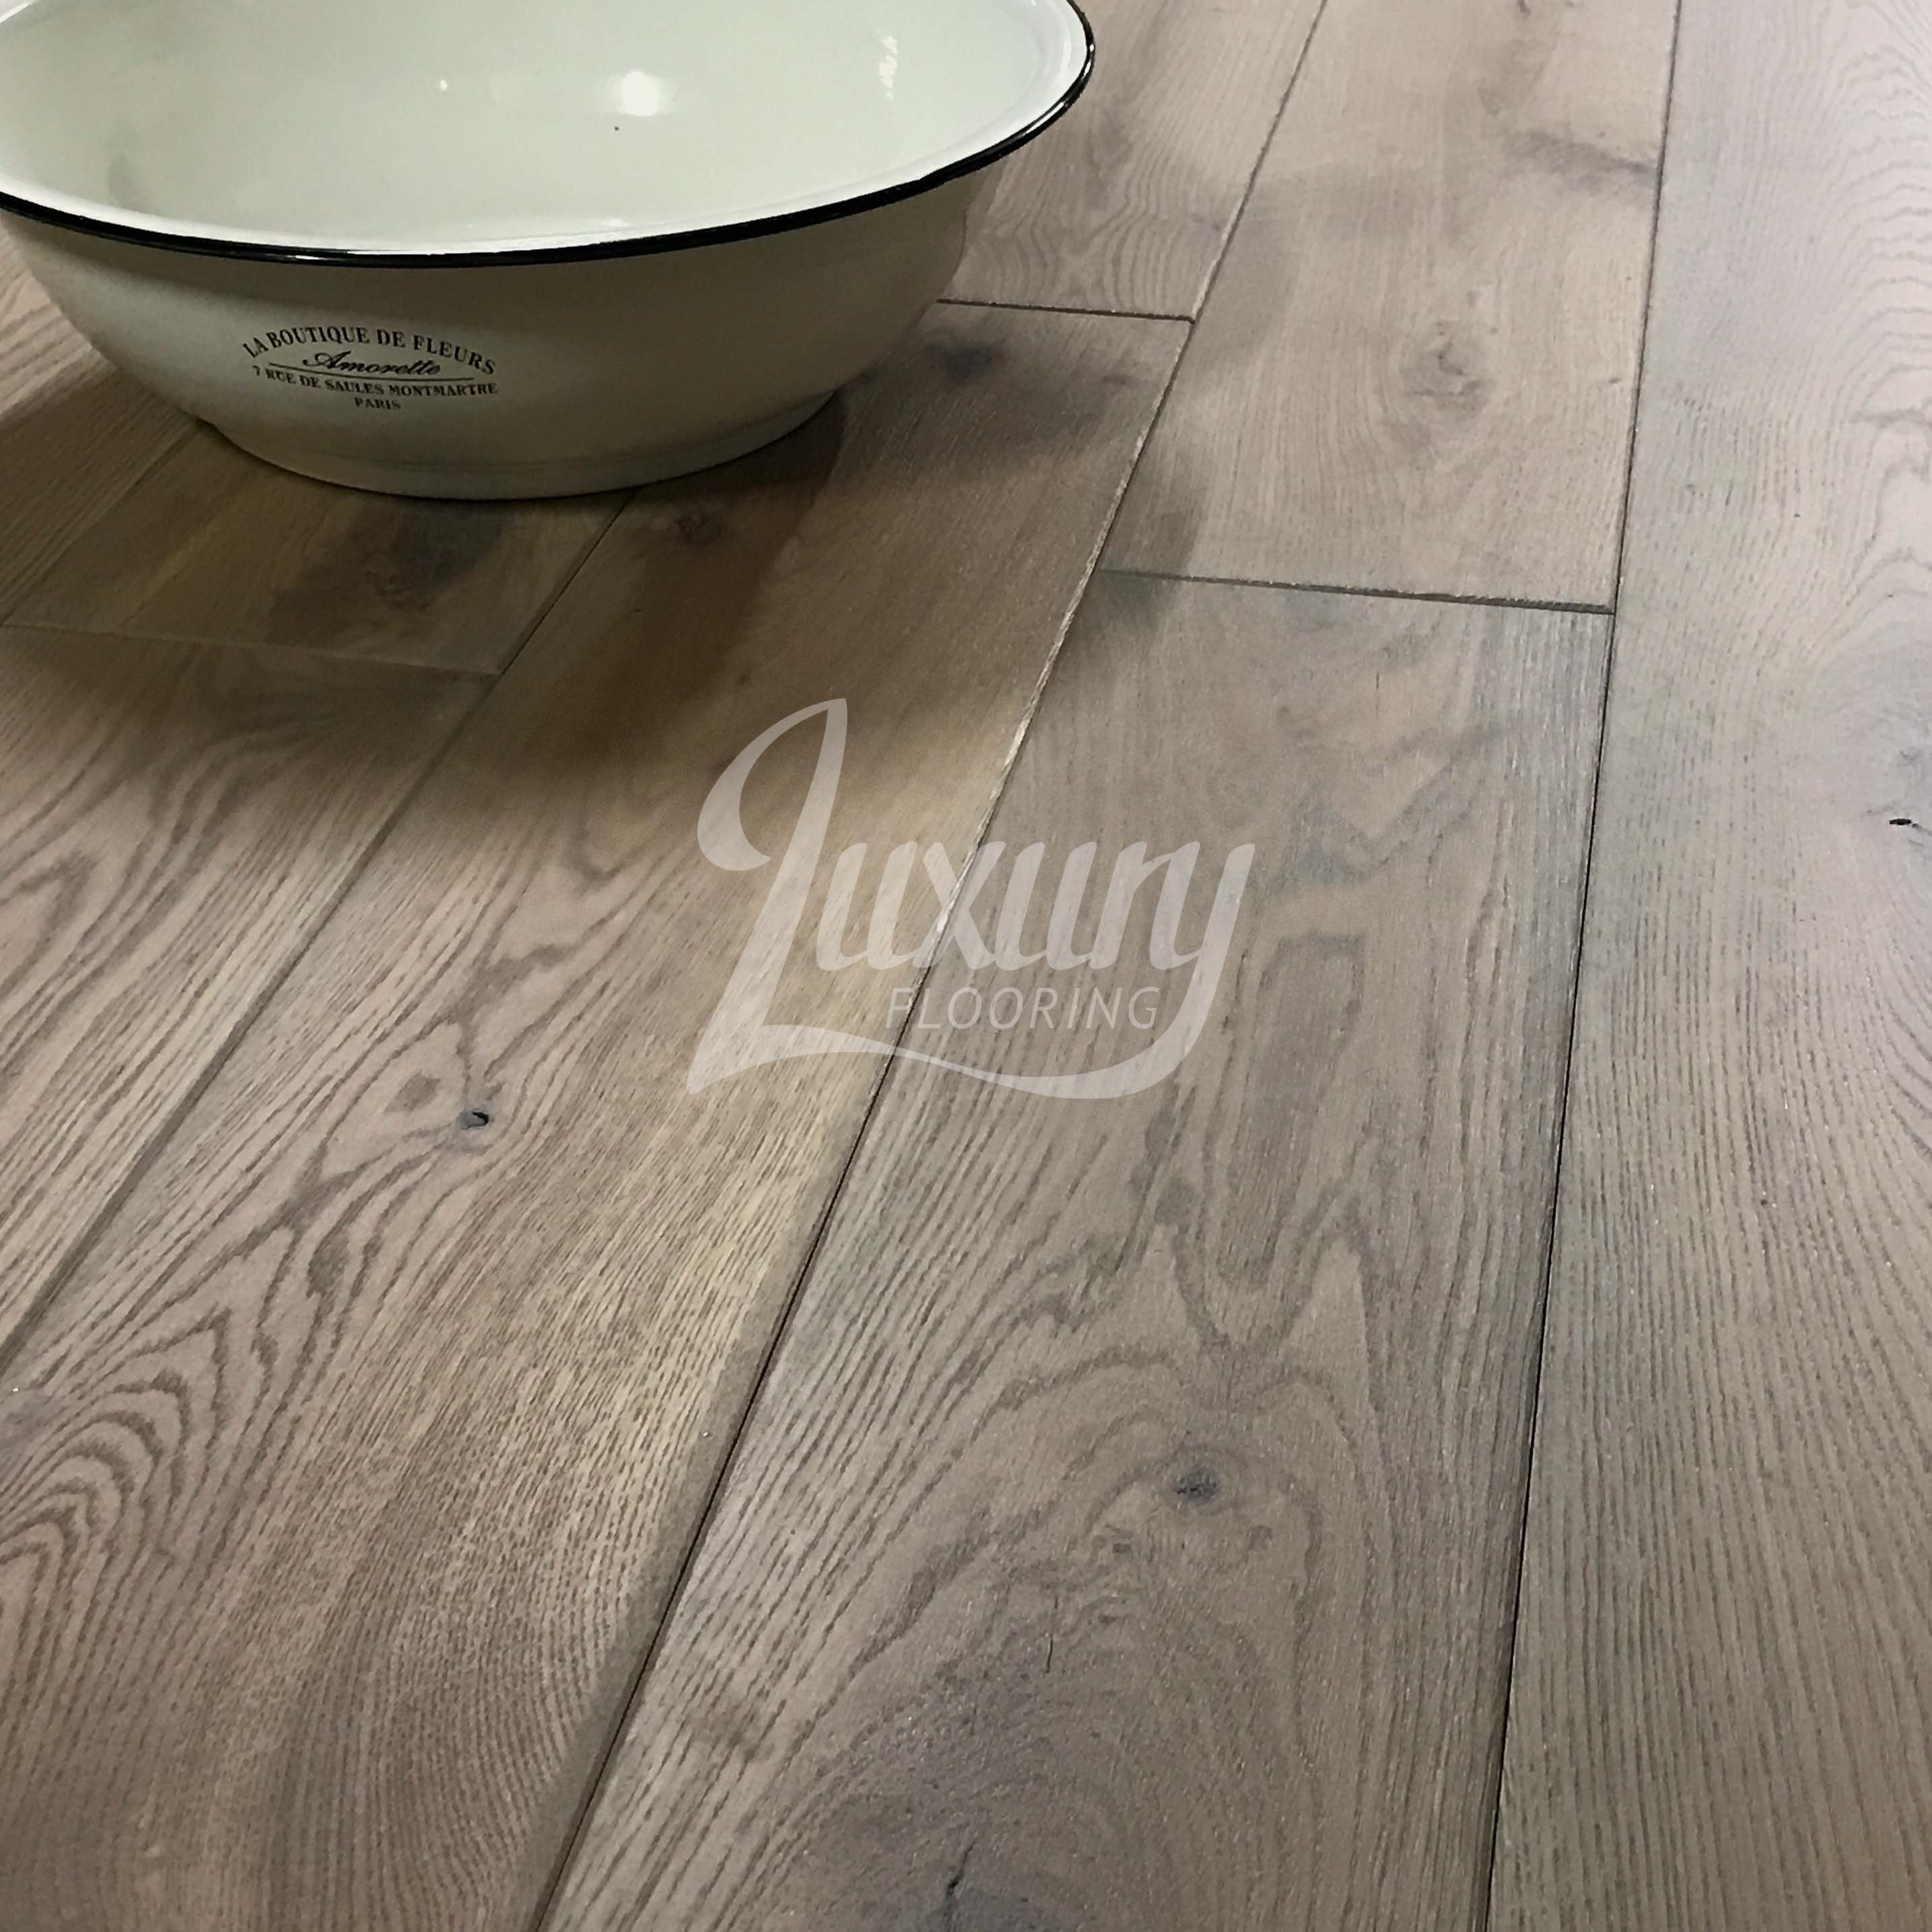 150mm_truffle_grey_brushed_oiled_european_solid_oak_wood_flooring_4.jpg